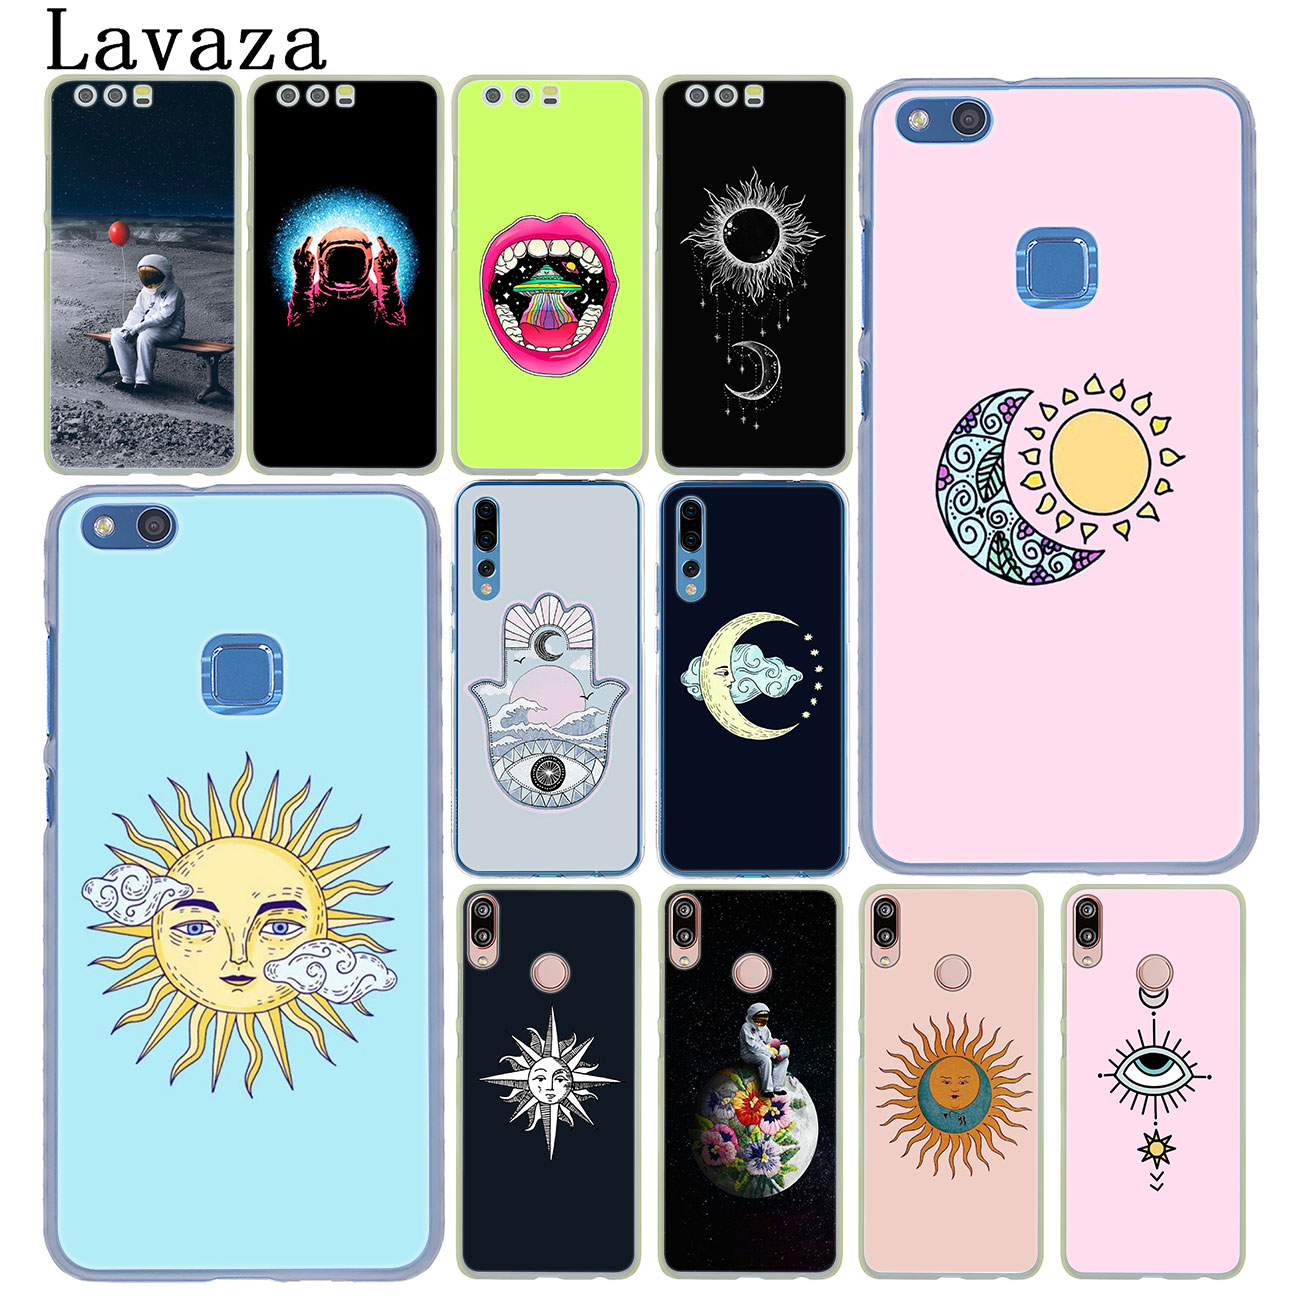 Phone Bags & Cases Cellphones & Telecommunications Beautiful Lavaza Sun And Moon Wiccan Phone Case For Huawei Y7 Y6 Prime Y5 Y9 2018 2017 Honor Play 10 8c 8x 8 9 Lite 7c 7x 7a Pro Cover 2019 New Fashion Style Online